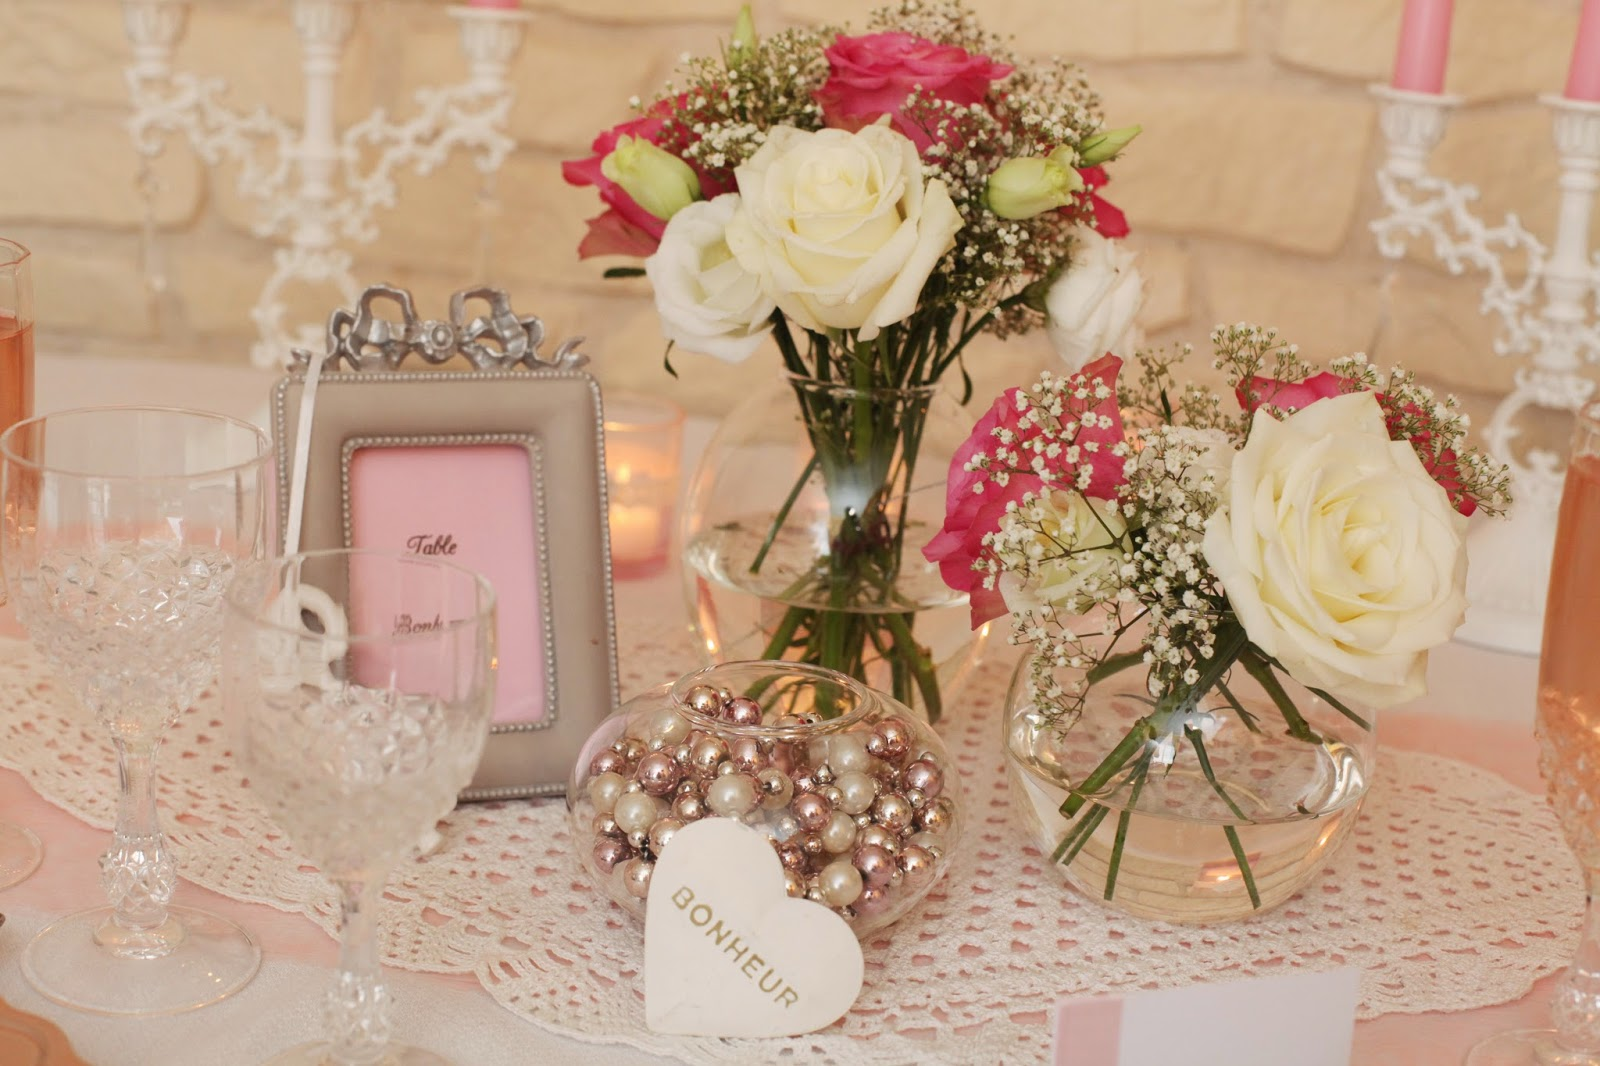 Mariage Gourmandise Décoration Shooting Inspiration Mariage Table Boudoir Gourmand Les Bulles